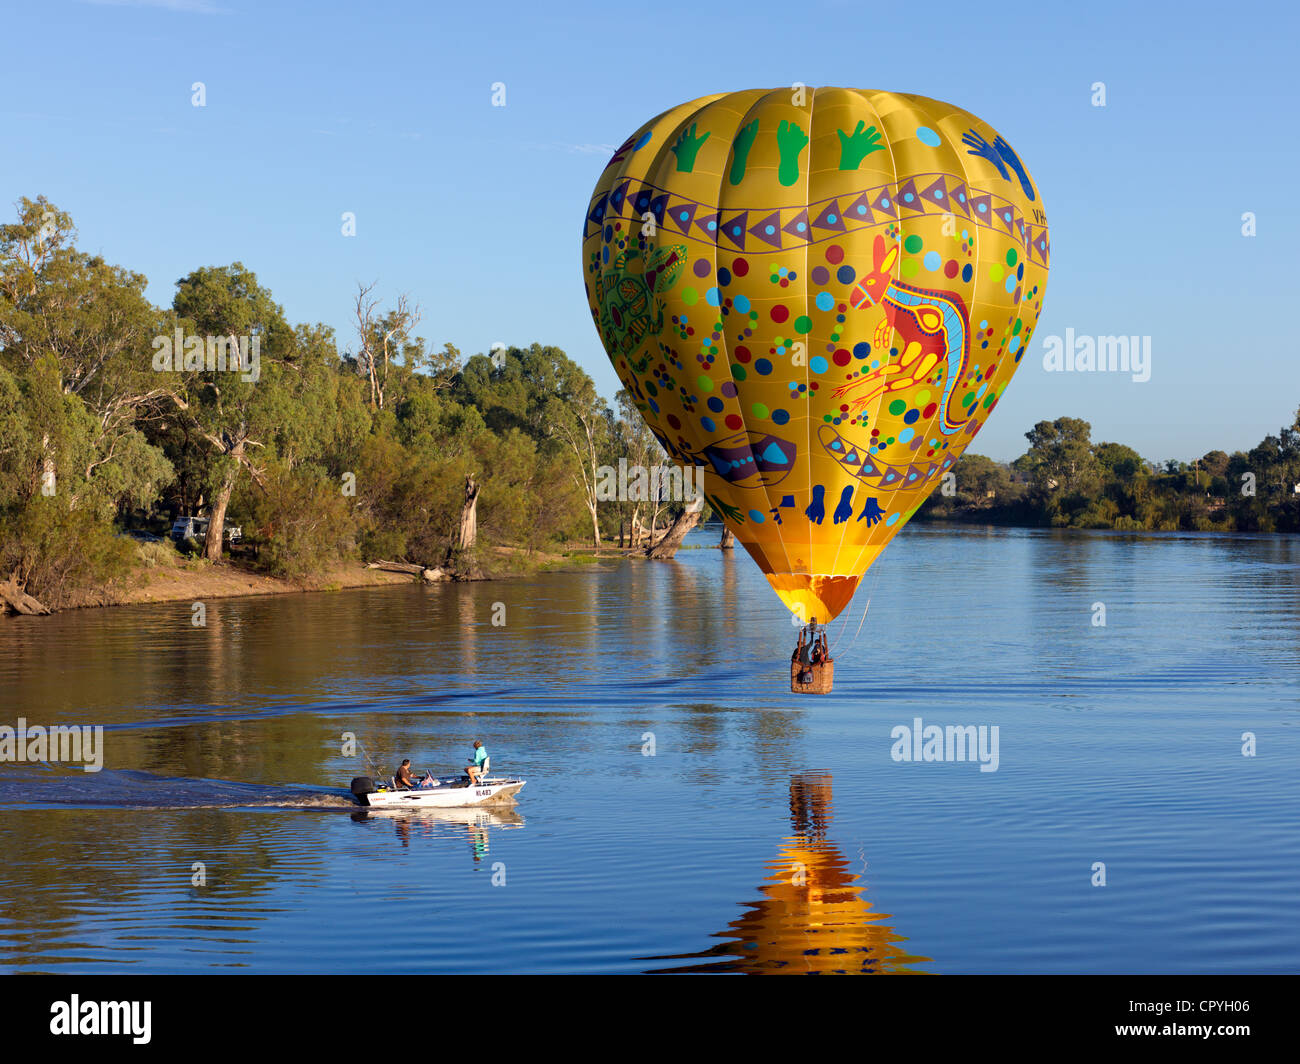 Colorful balloon drifts slowly over the River Murray near Wentworth, NSW, Australia Stock Photo